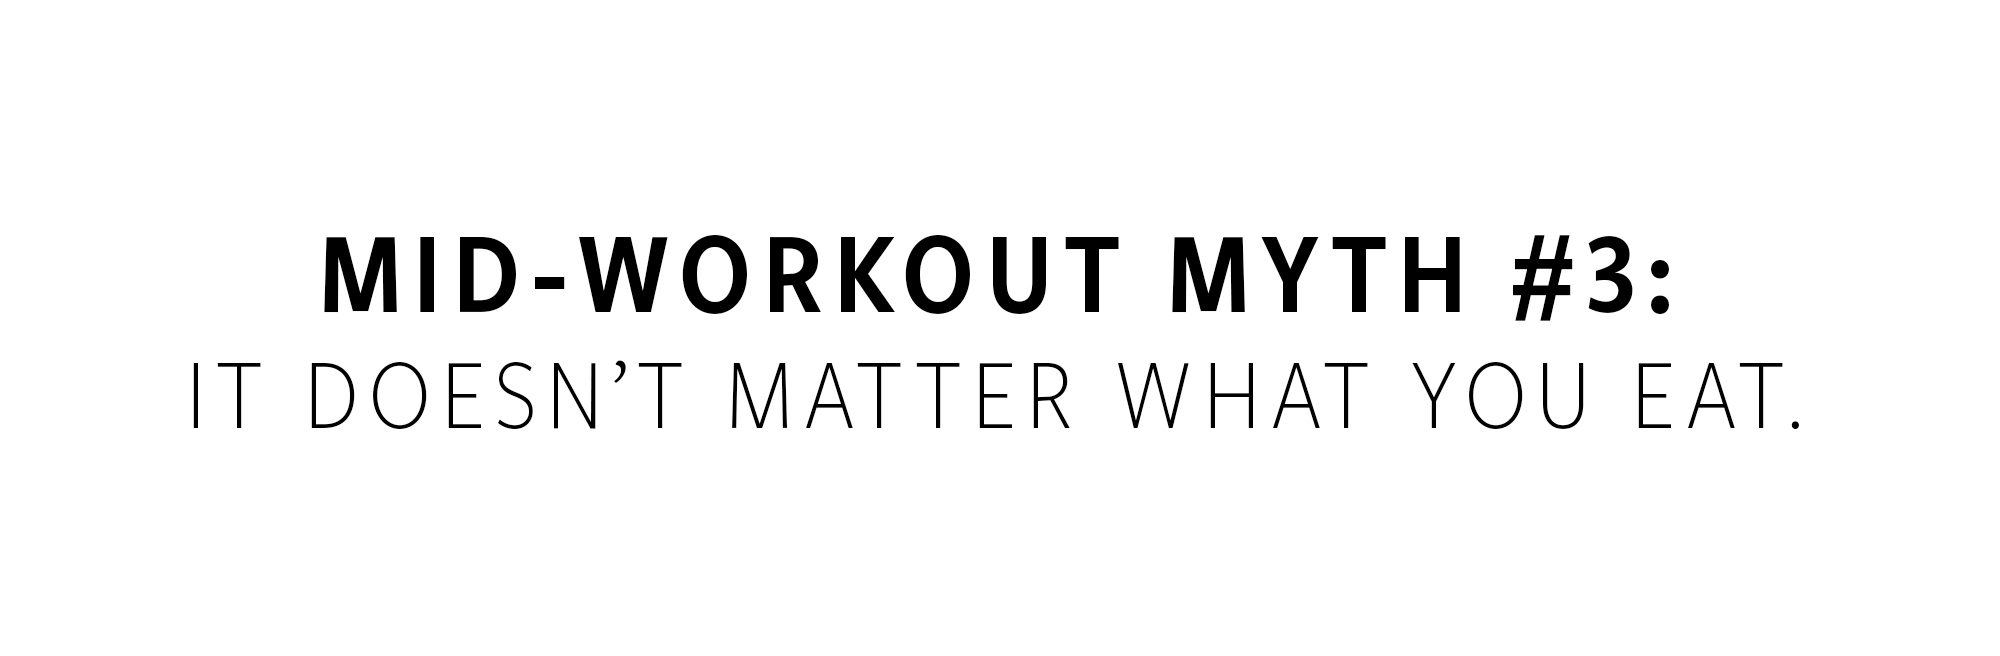 workout myths